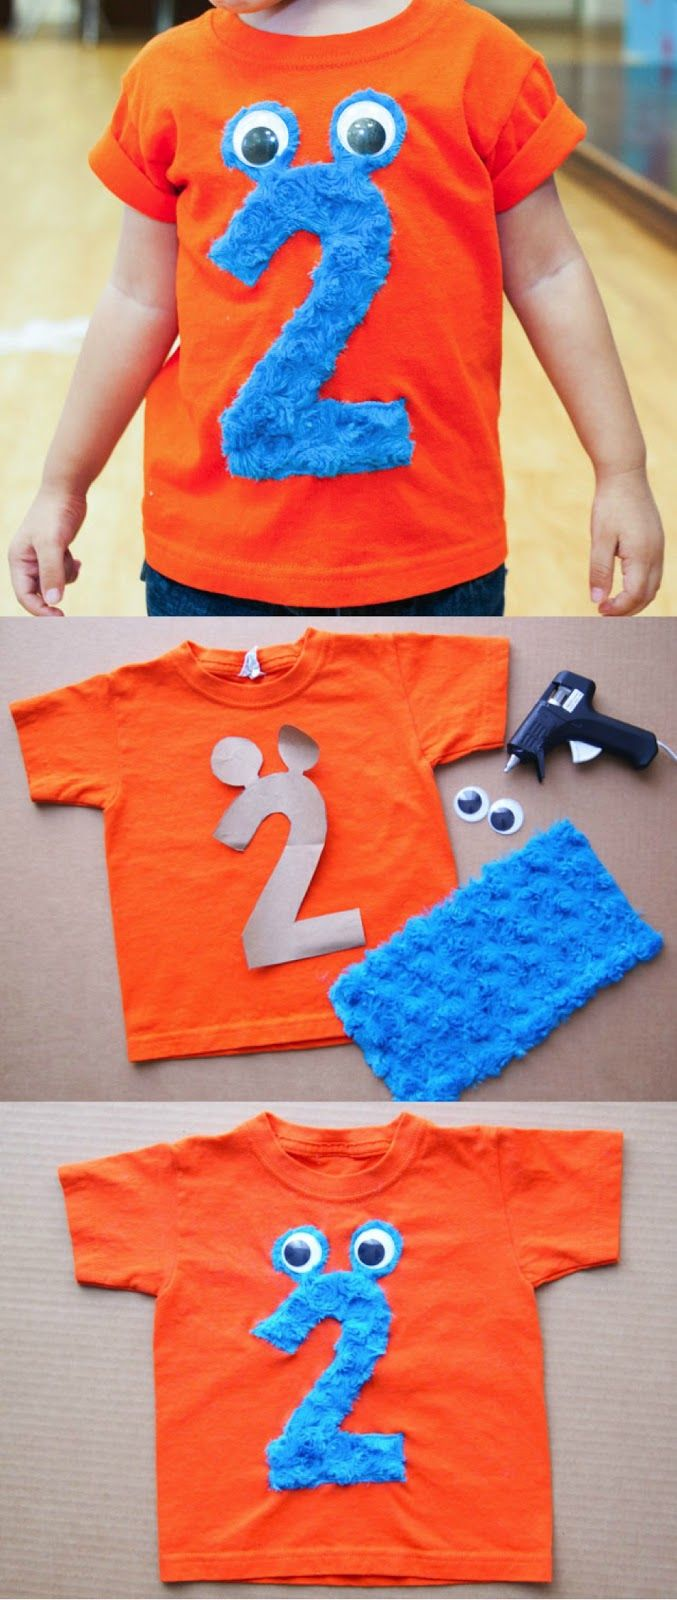 Clo By Clau!: DIY ideas: Monster Tee - Decora una Playera con Monstruo en forma de número